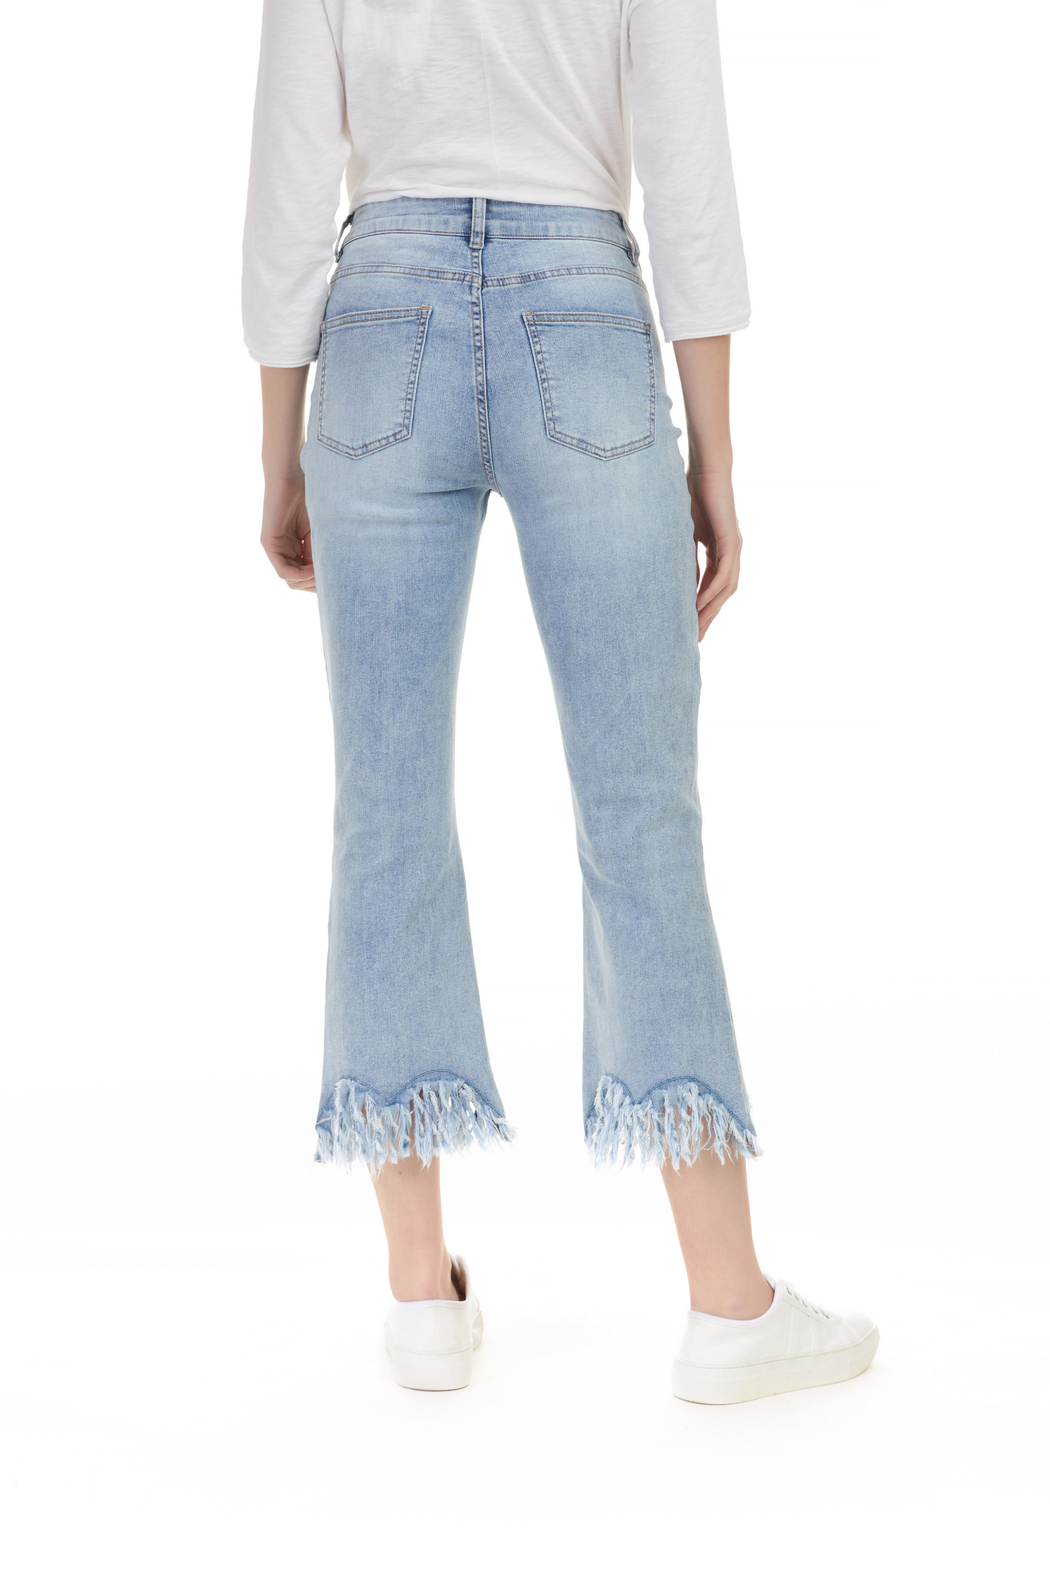 Charlie B. Frayed Stretch Denim - Side Cropped Image